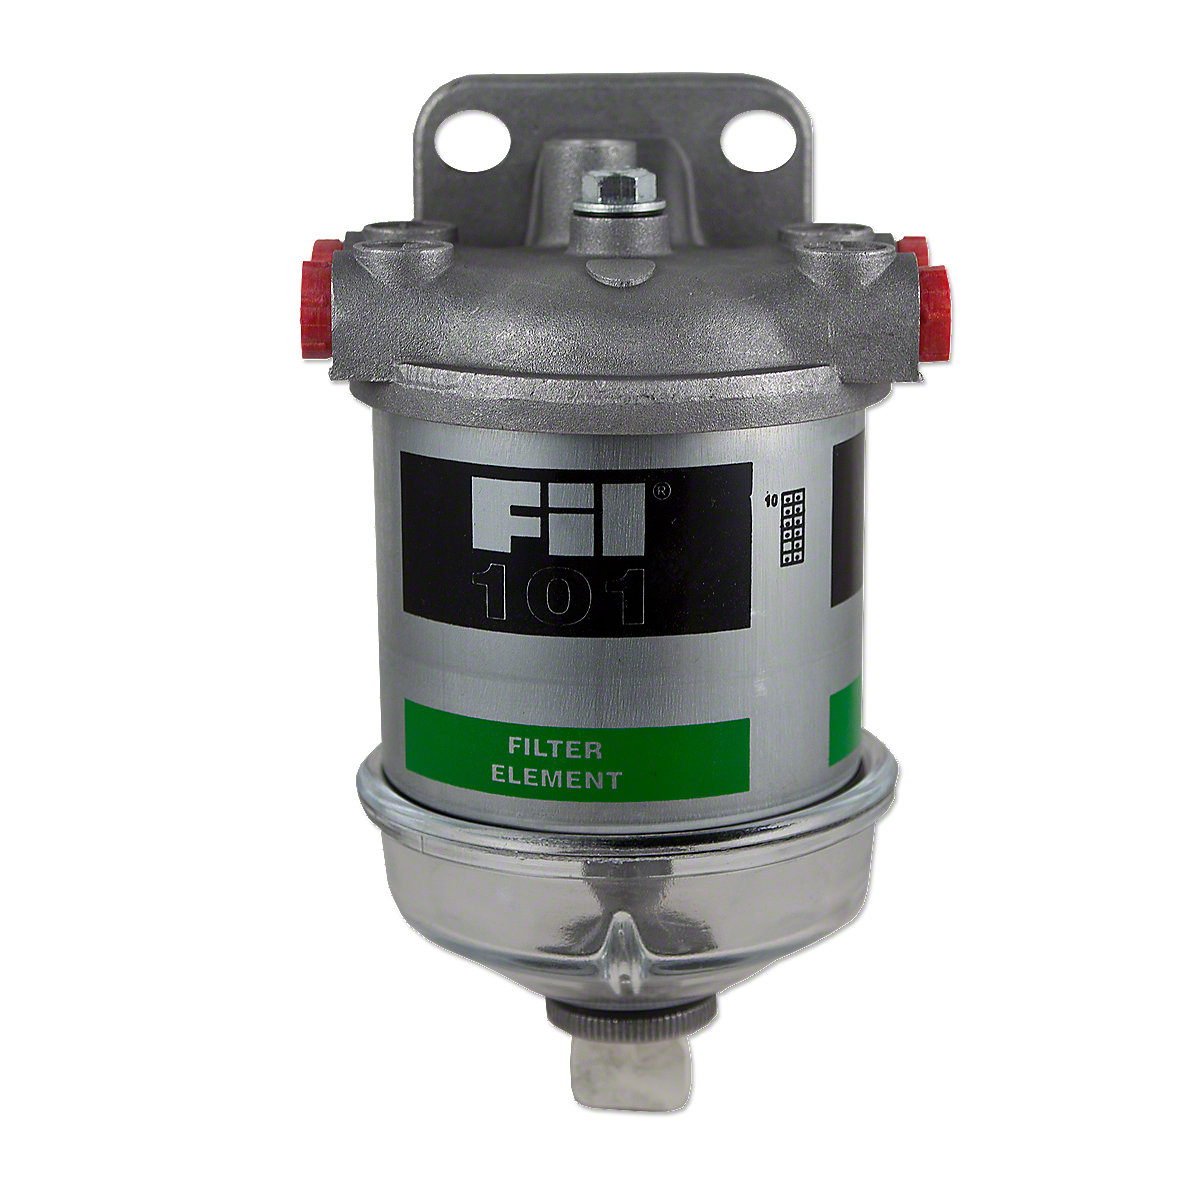 Diesel Single Fuel Filter Assembly With Glass Bowl